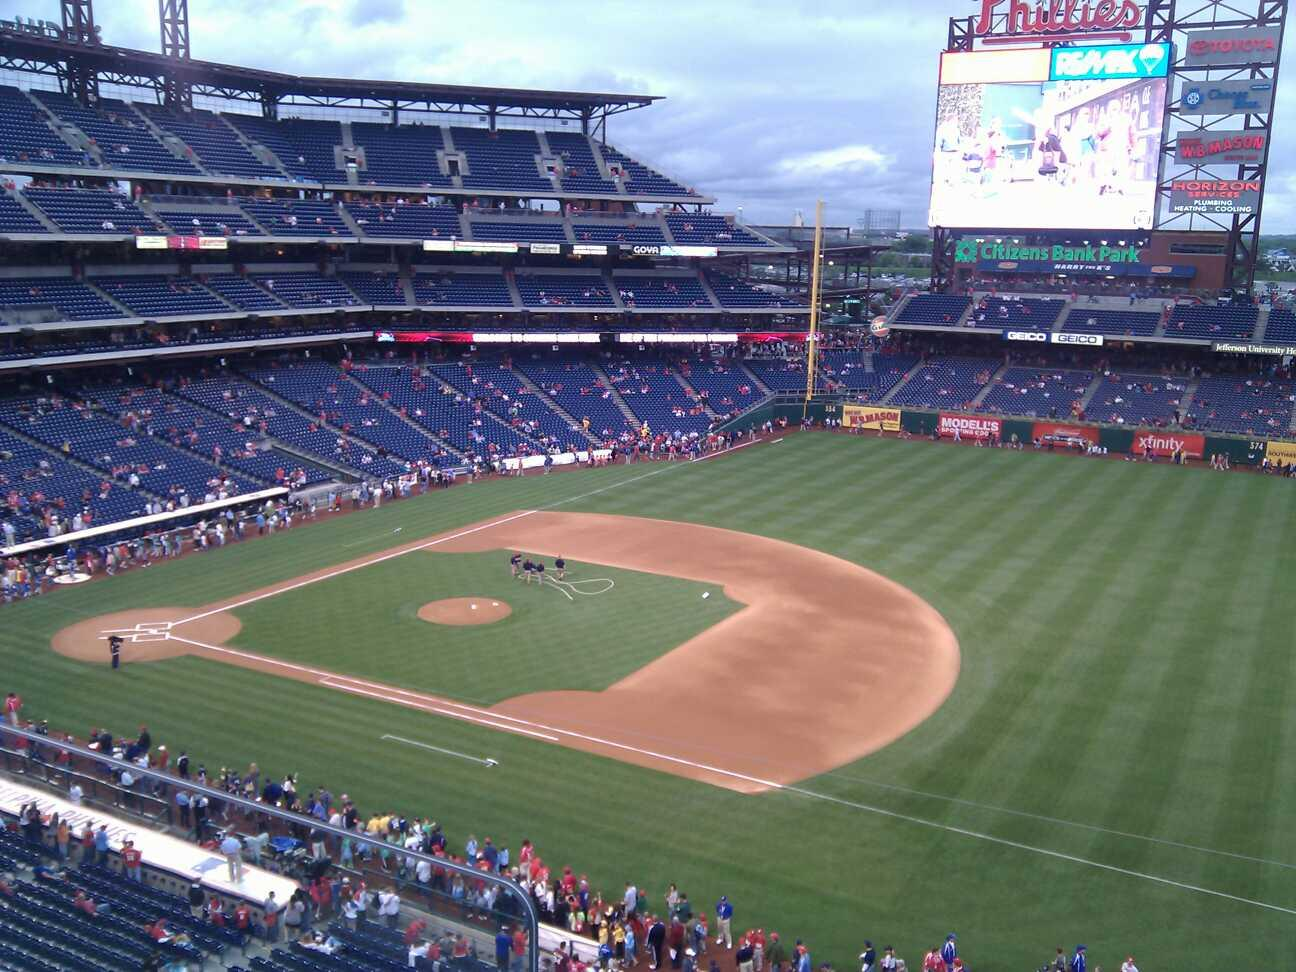 Citizens Bank Park Section 312 Row 2 Seat 1